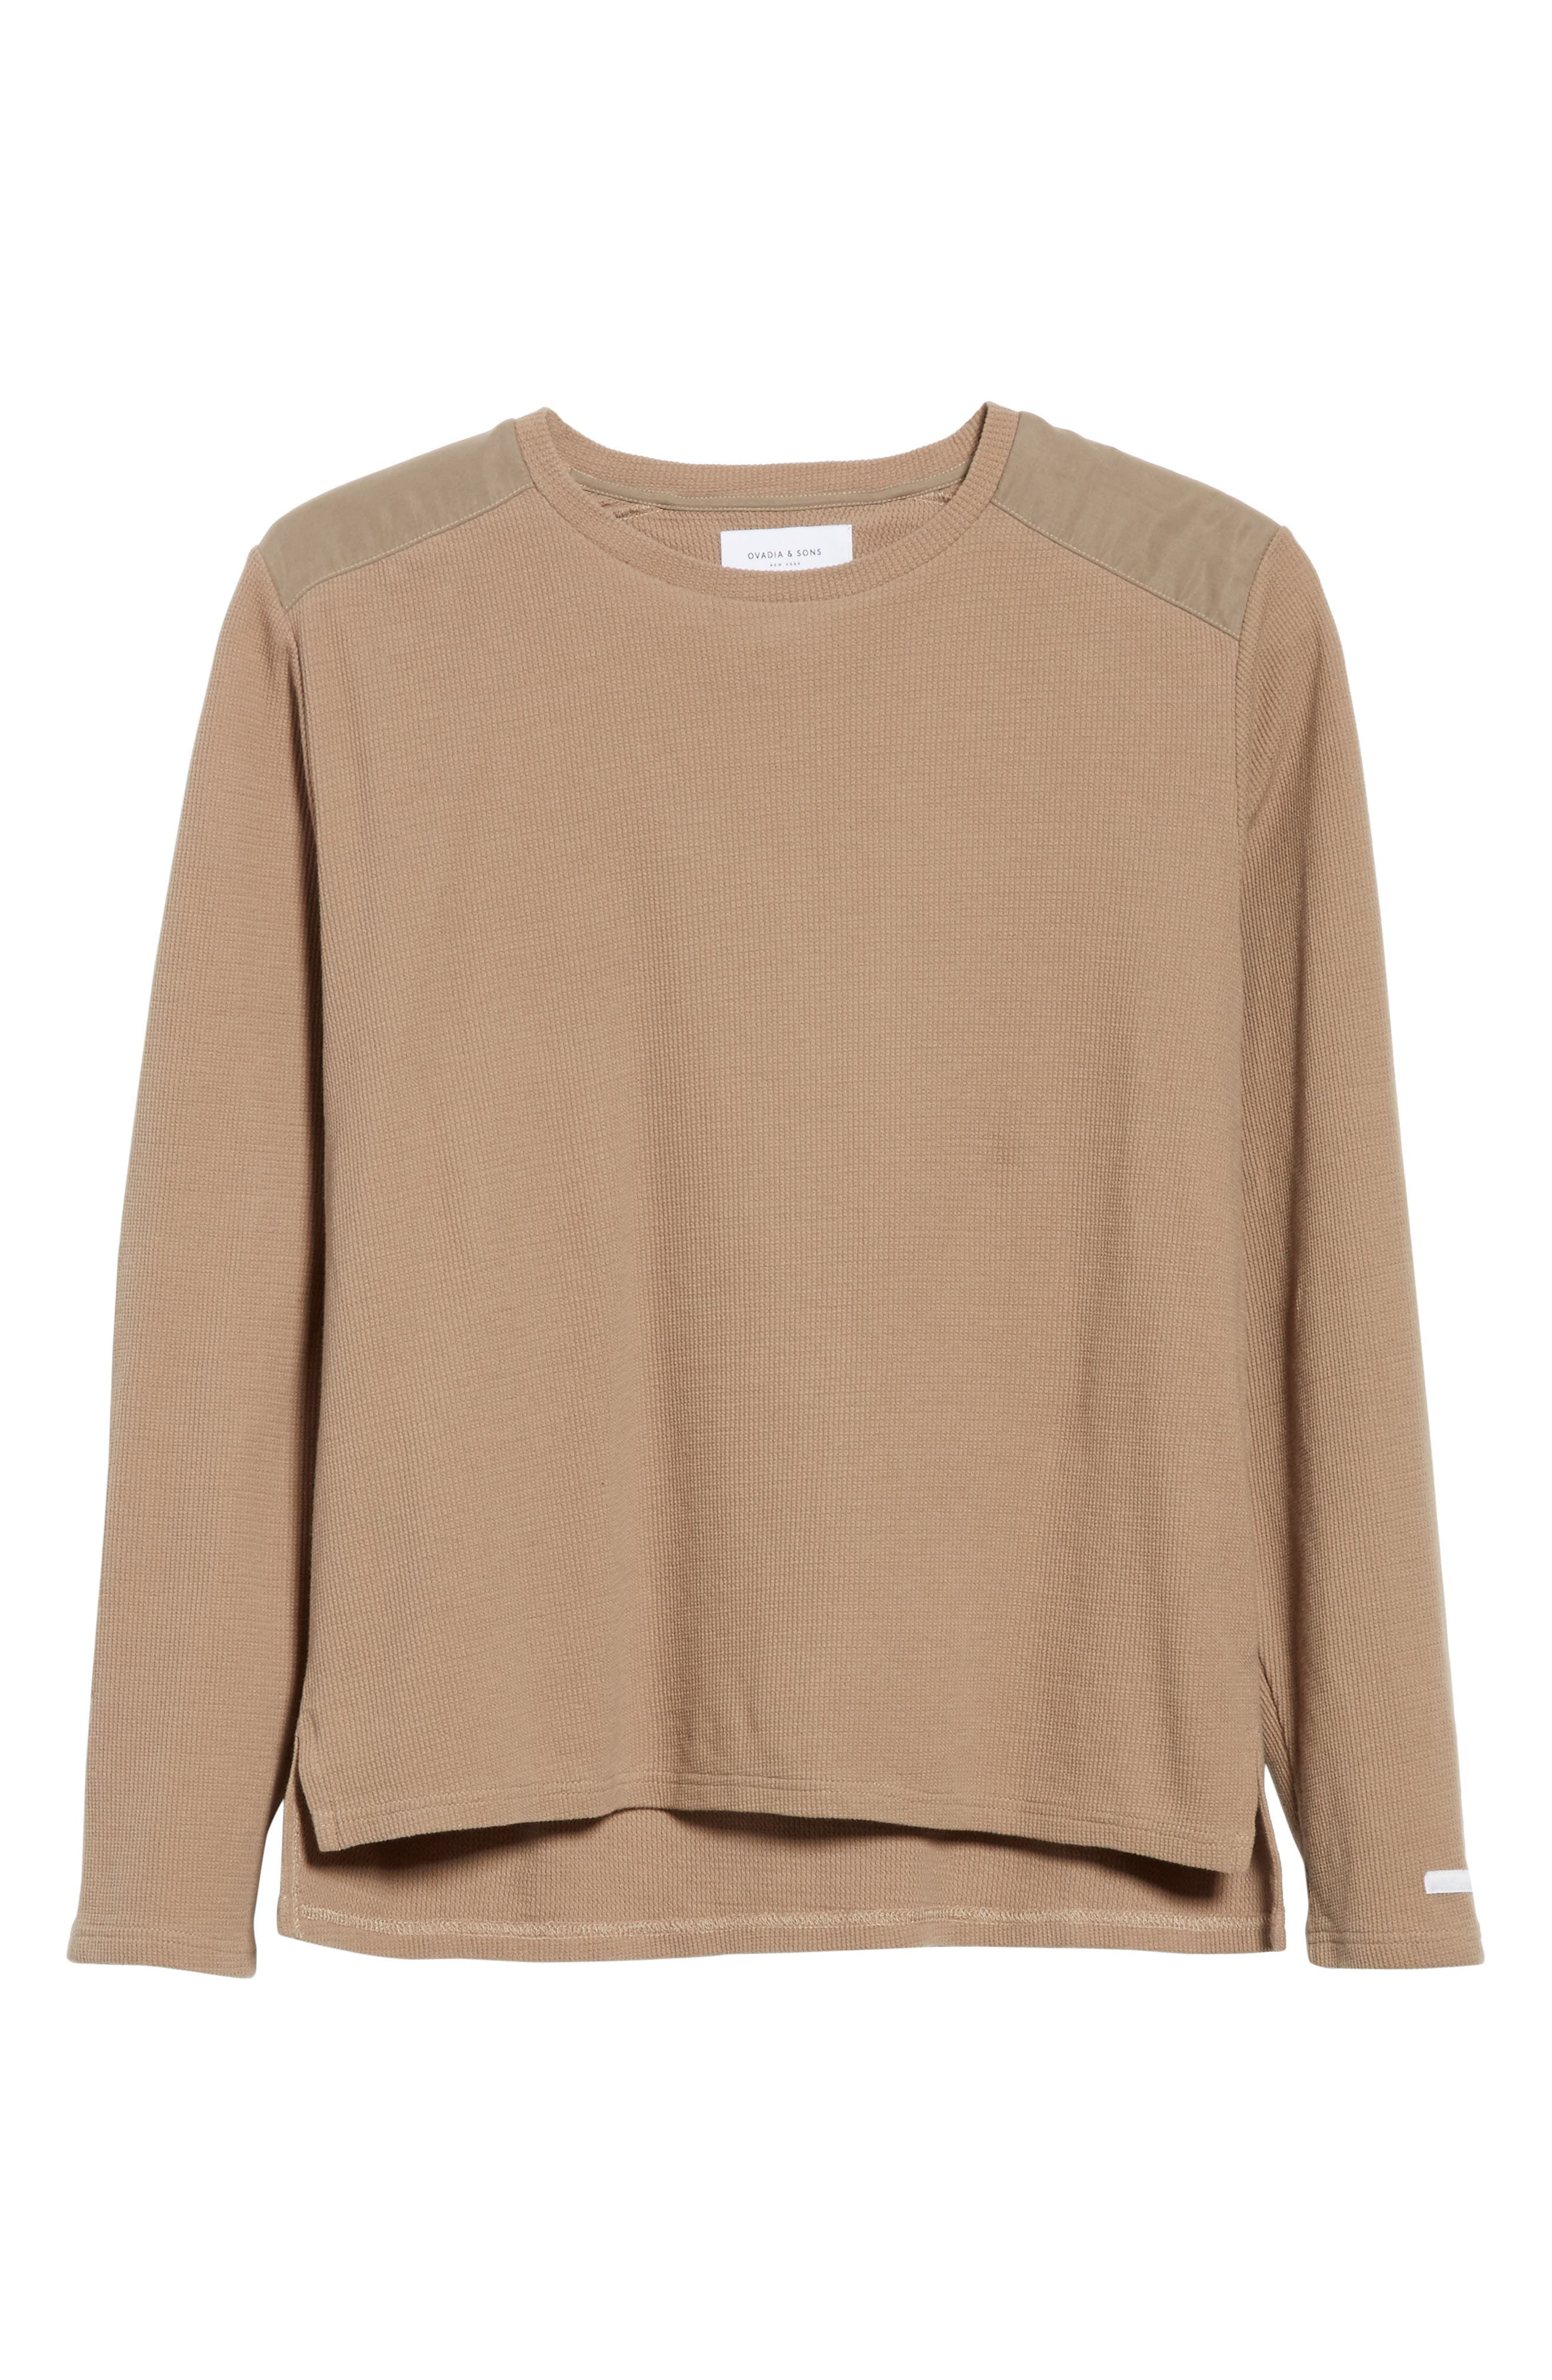 Crewneck Sweater,                             Alternate thumbnail 6, color,                             200